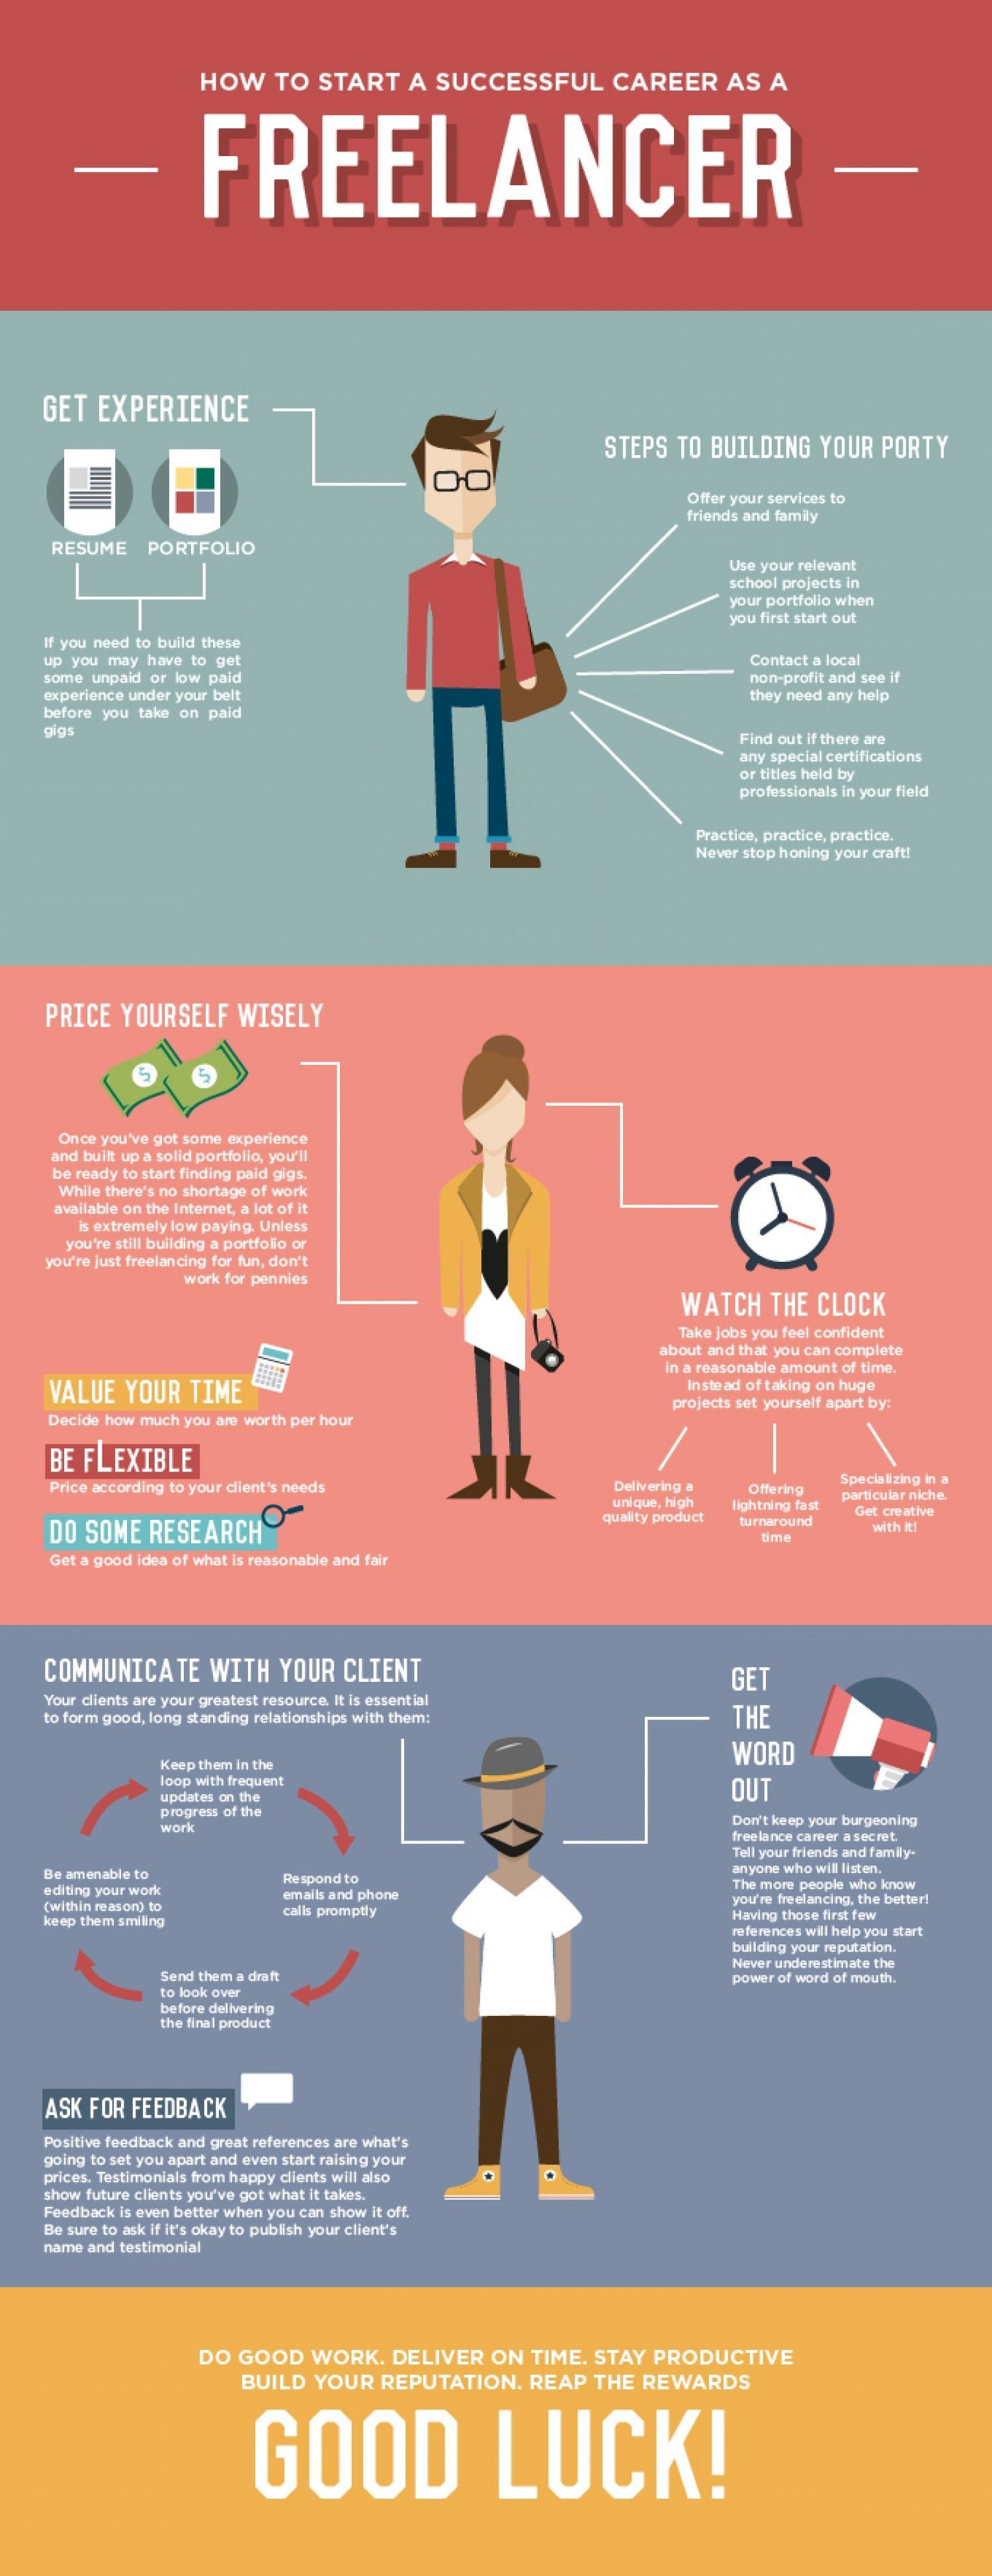 How To Have A Breakthrough As A Freelancer And Bring In More Clients Infographic Freelance Writing Web Design